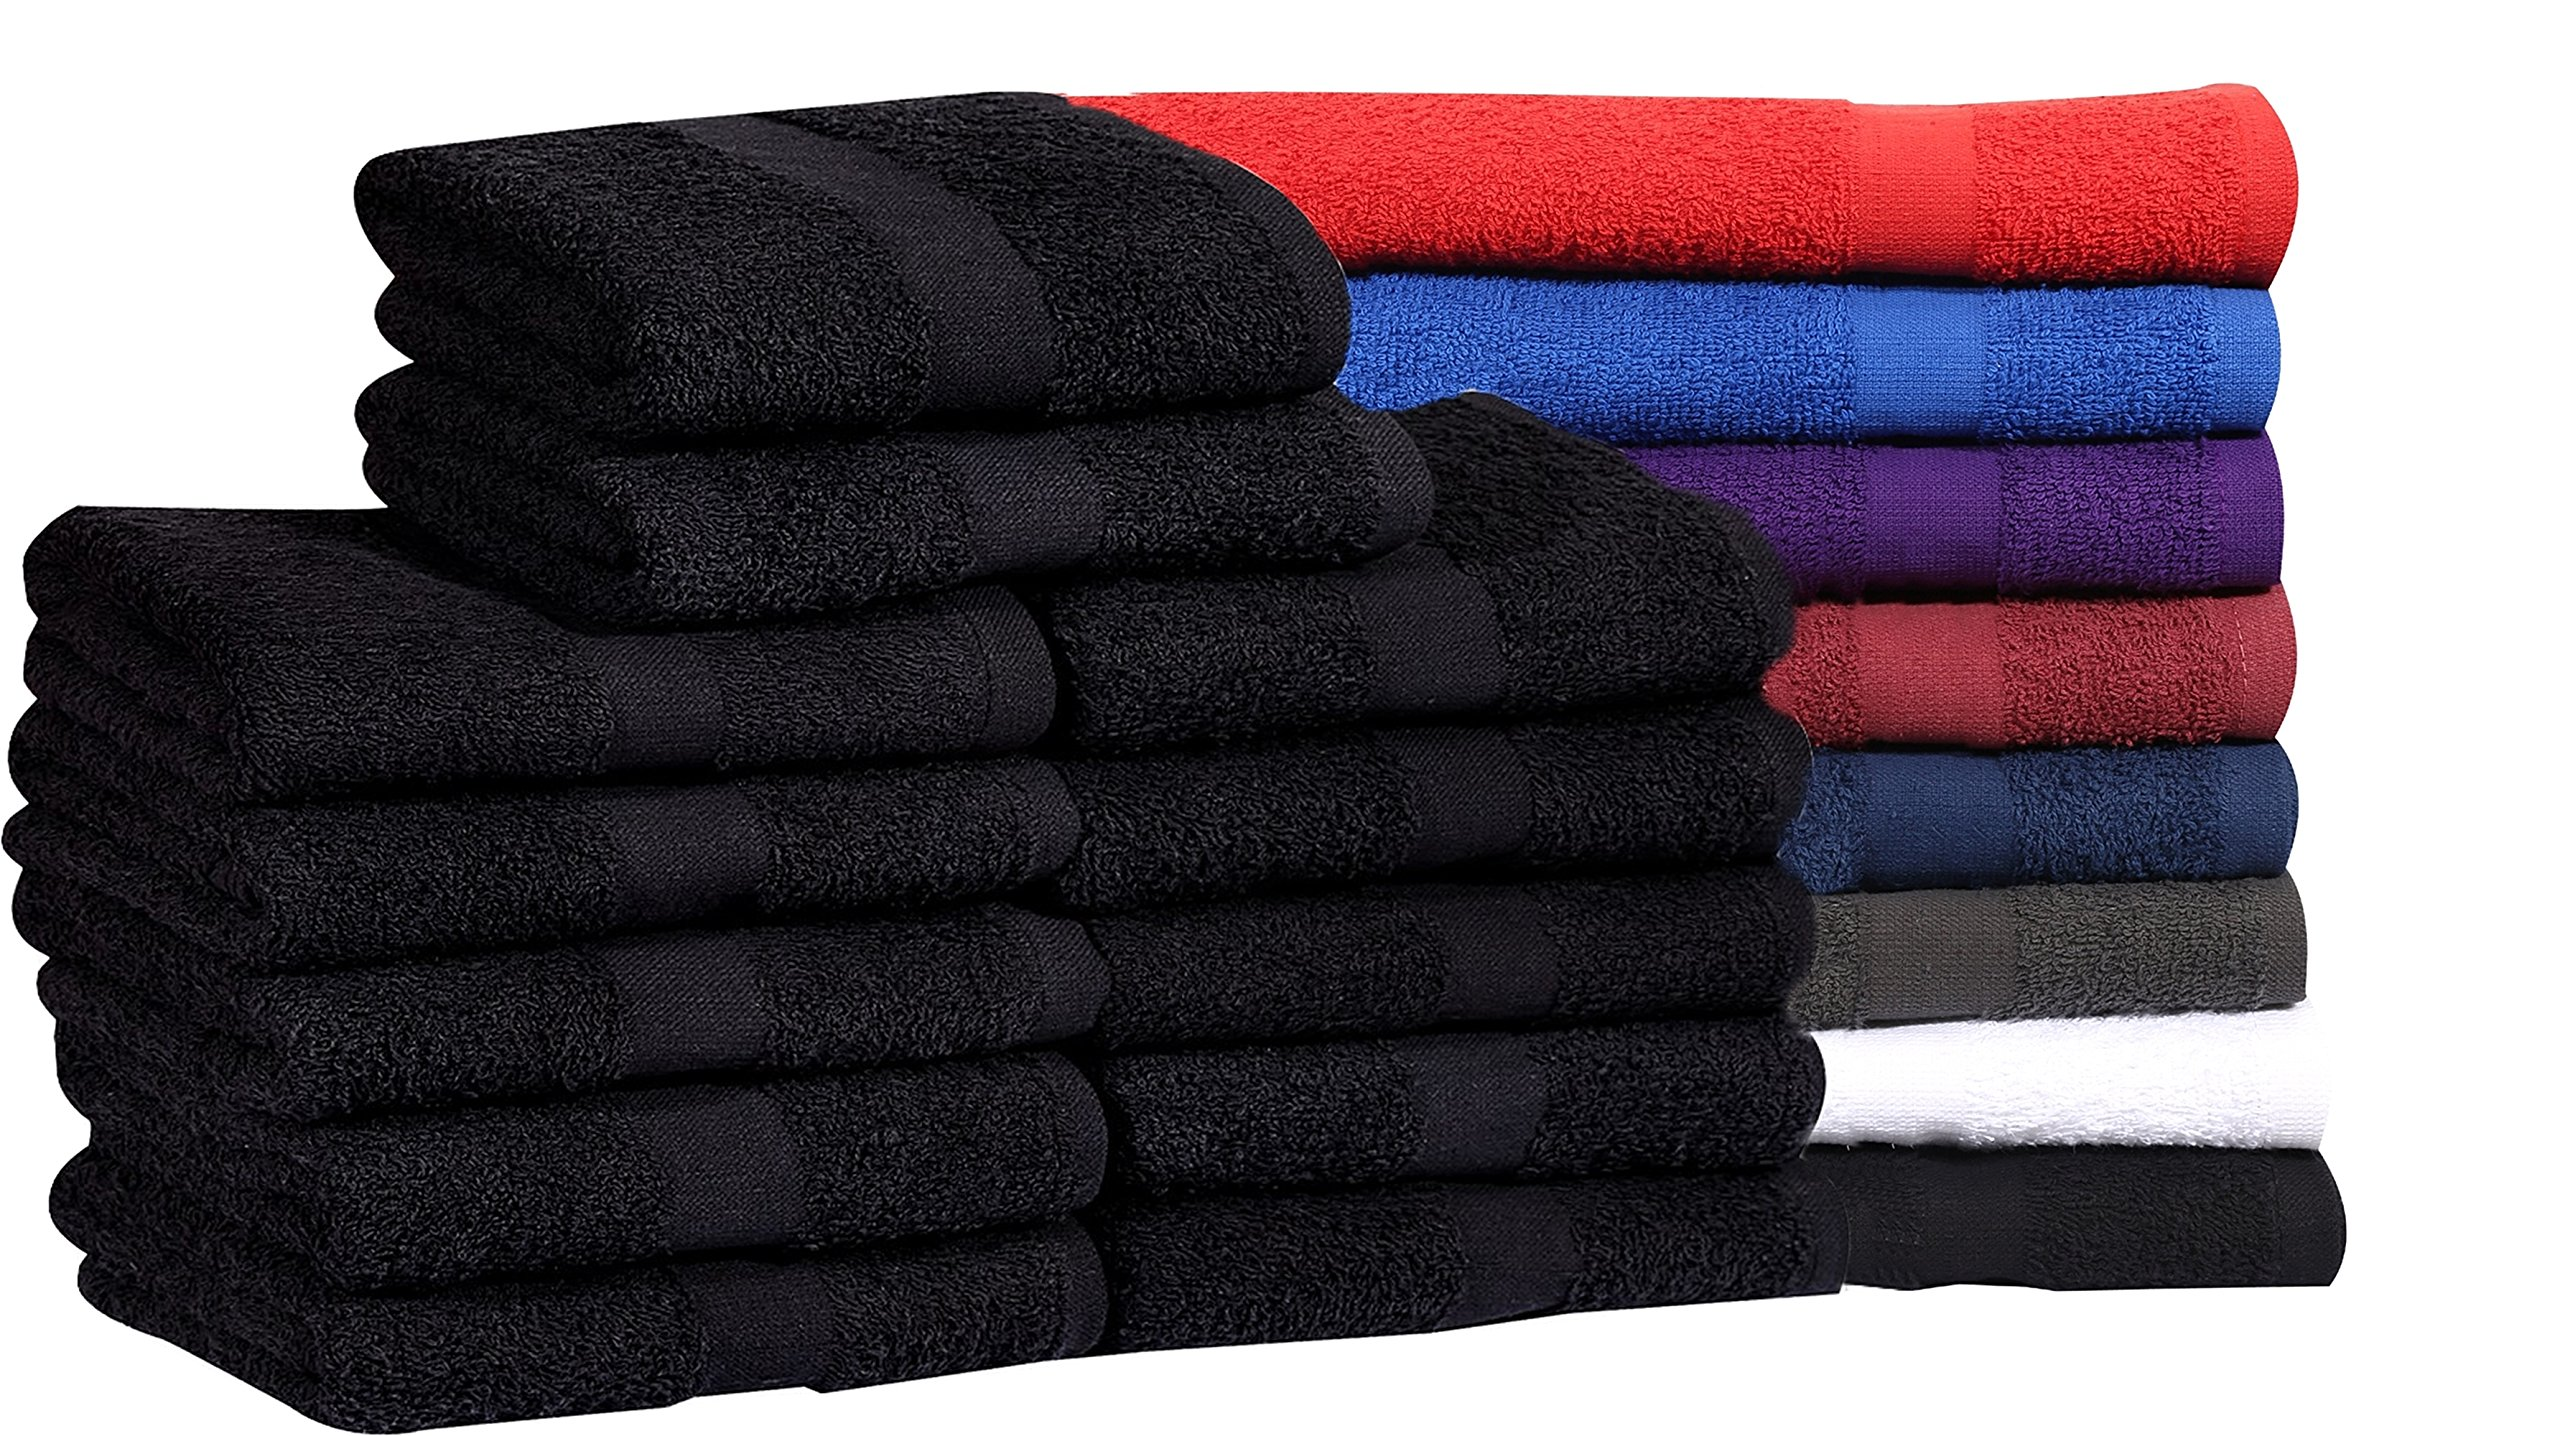 MAGTEX Cotton Salon Towels (24-Pack, Black,16x27 inches) - Soft Absorbent Quick Dry Gym-Salon-Spa Hand Towel (Black)